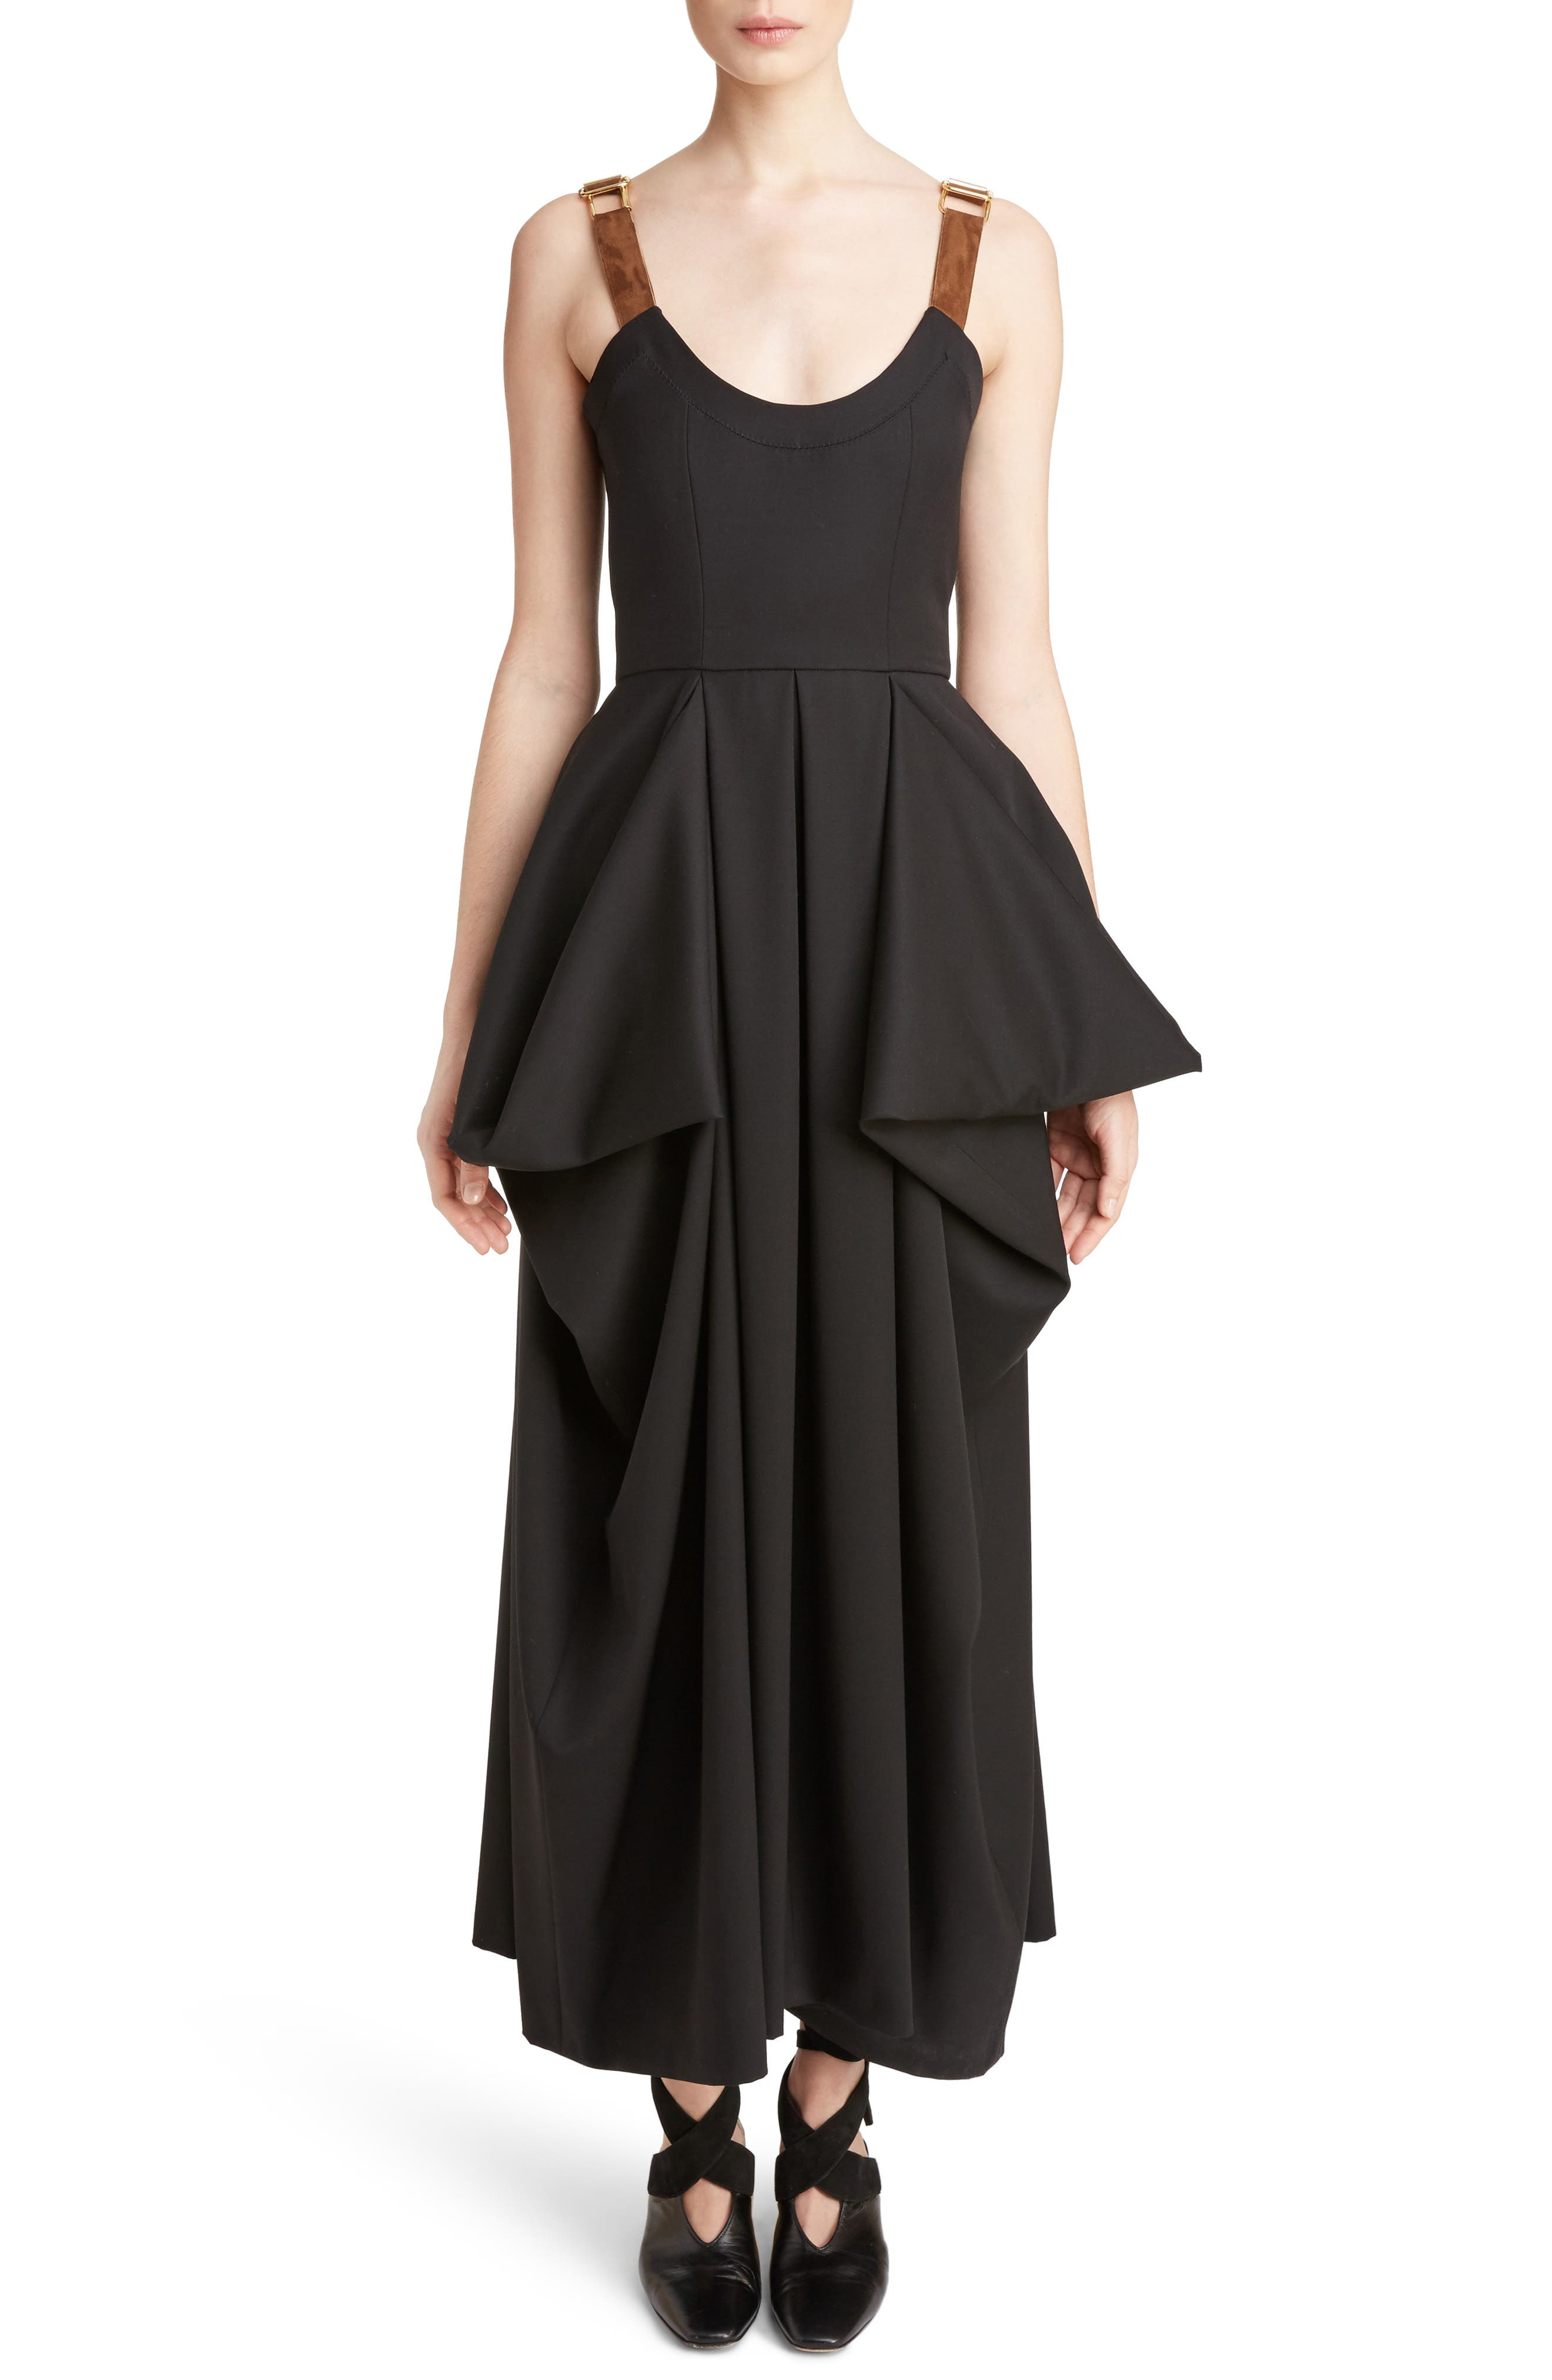 J.W.ANDERSON Drape Pocket Wool Dress,                             Main thumbnail 1, color,                             Black